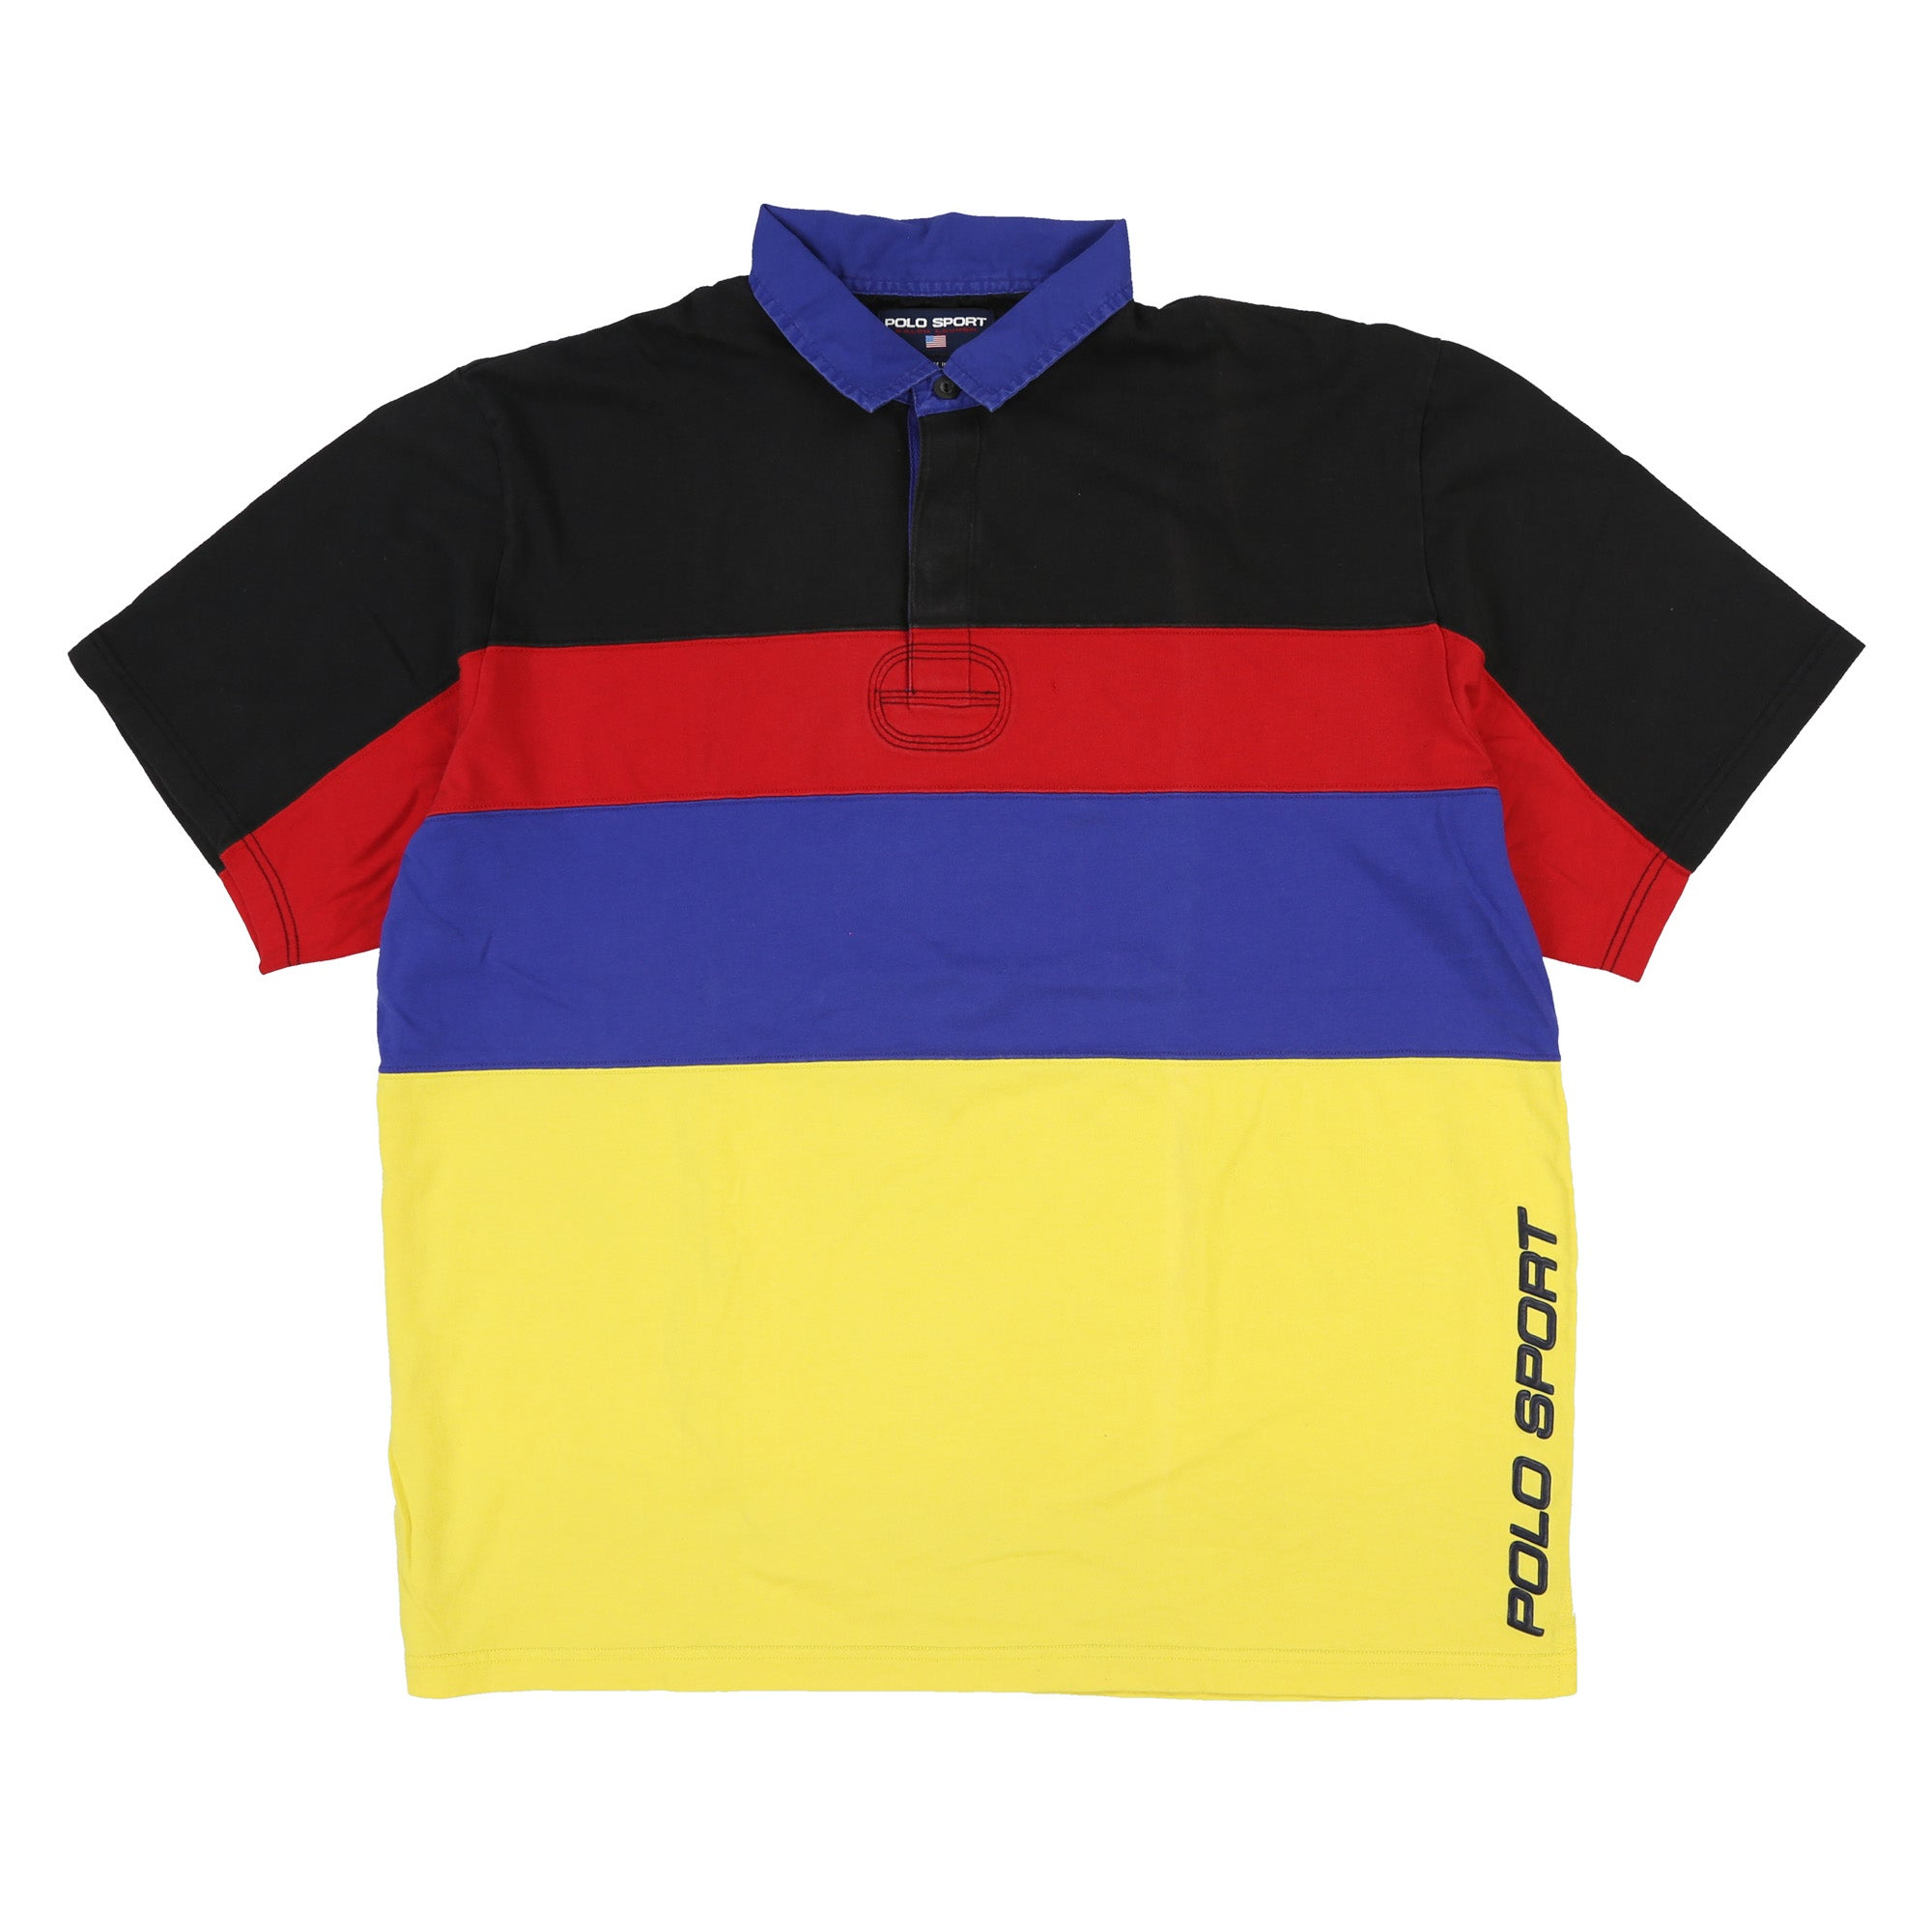 POLO SPORT SPELL OUT BLOCK COLOR POLO // BLACK RED BLUE YELLOW